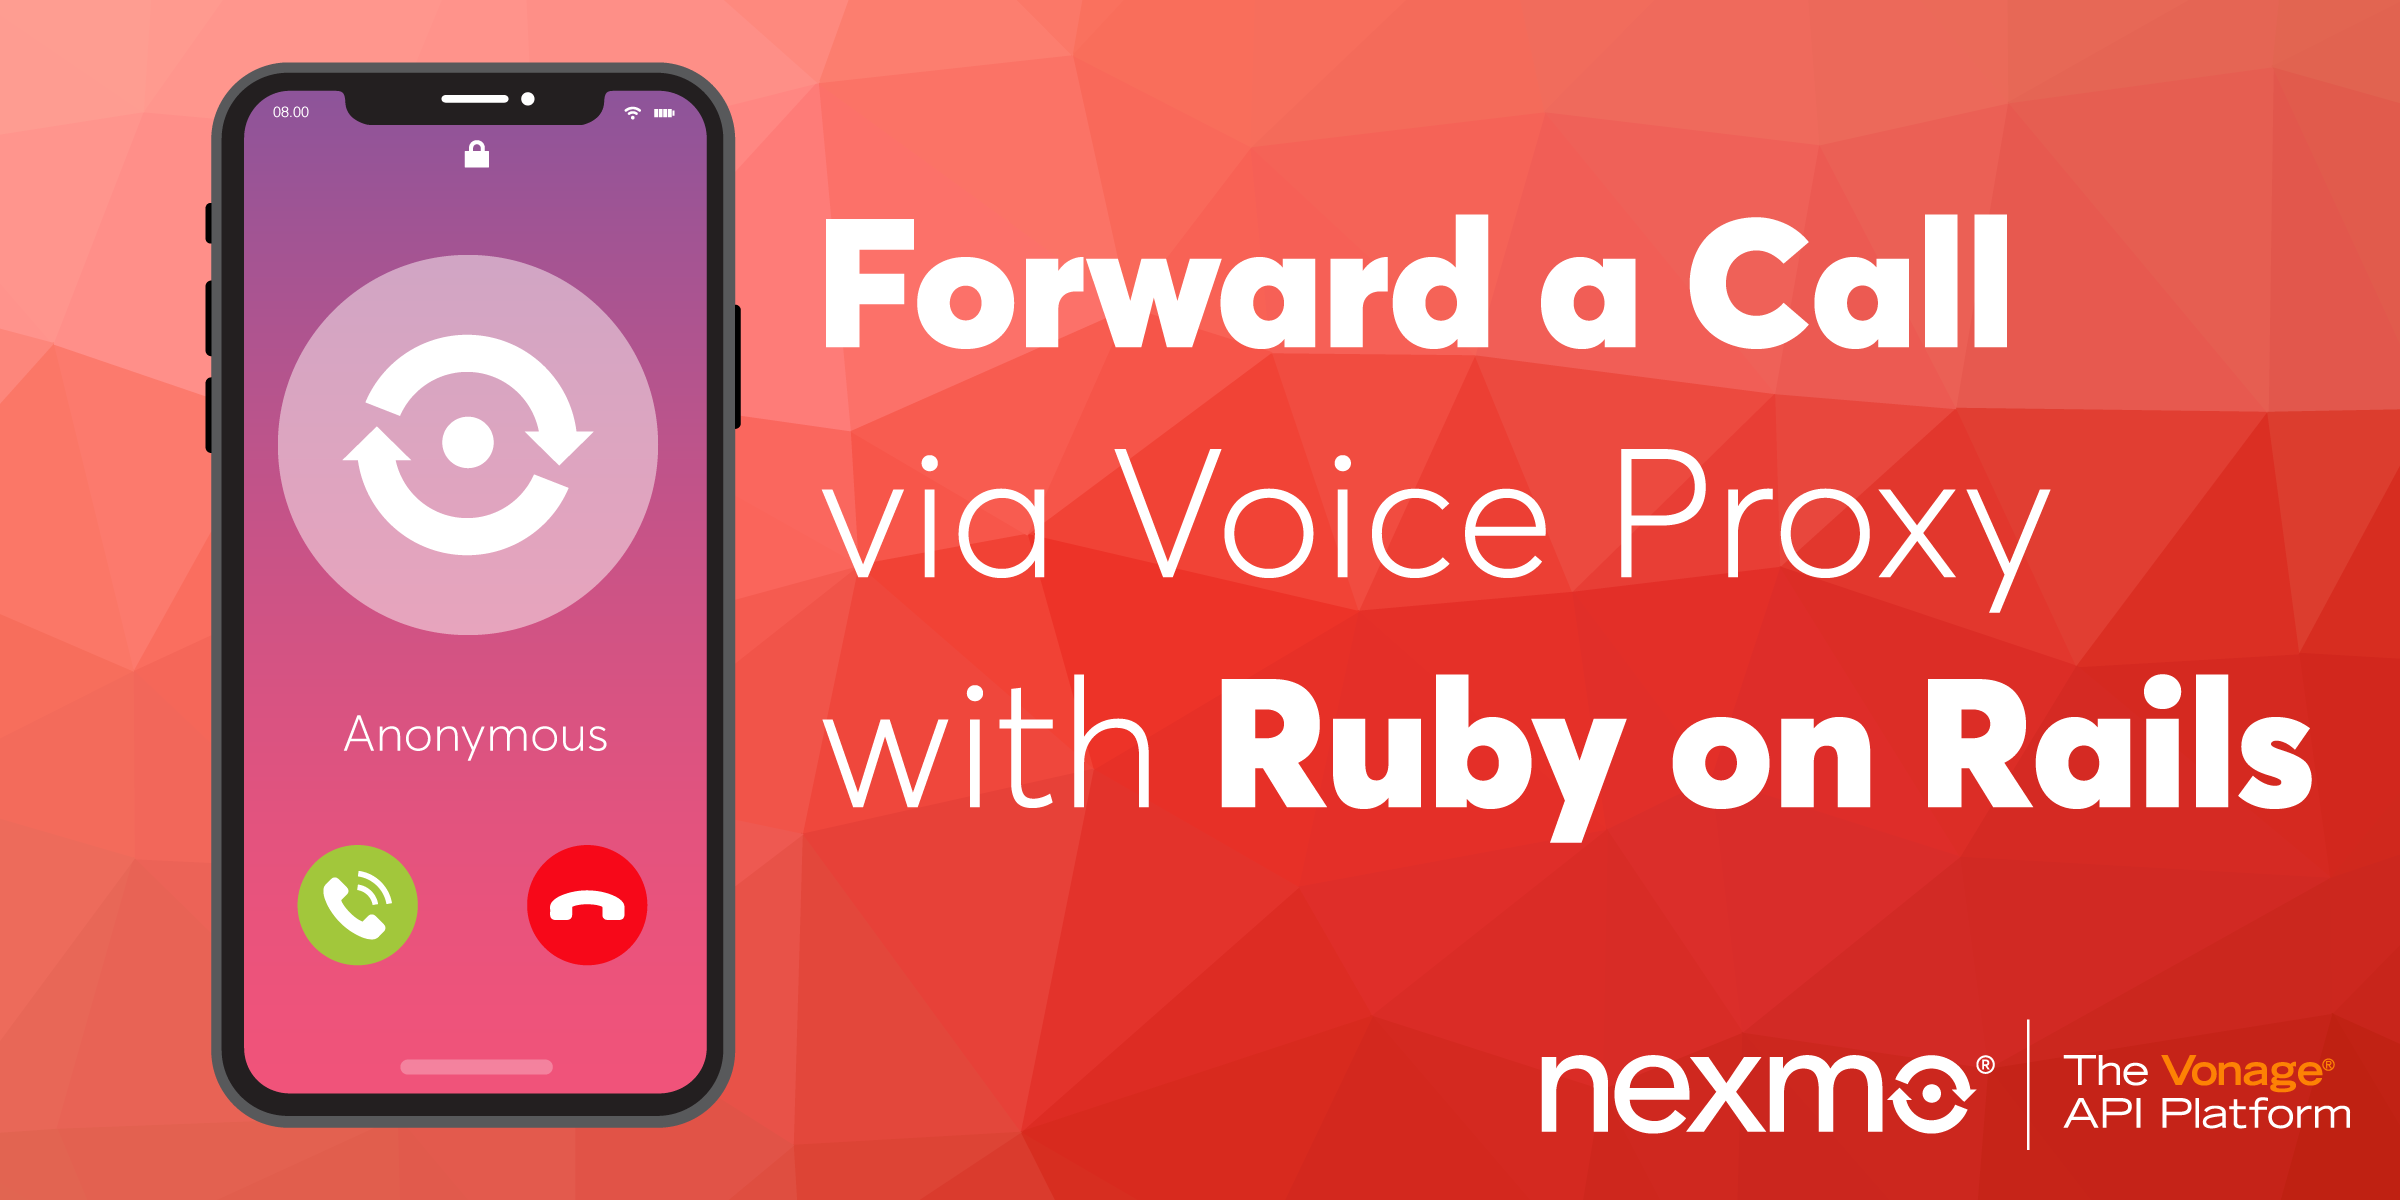 Forward a Call via Voice Proxy with Ruby on Rails